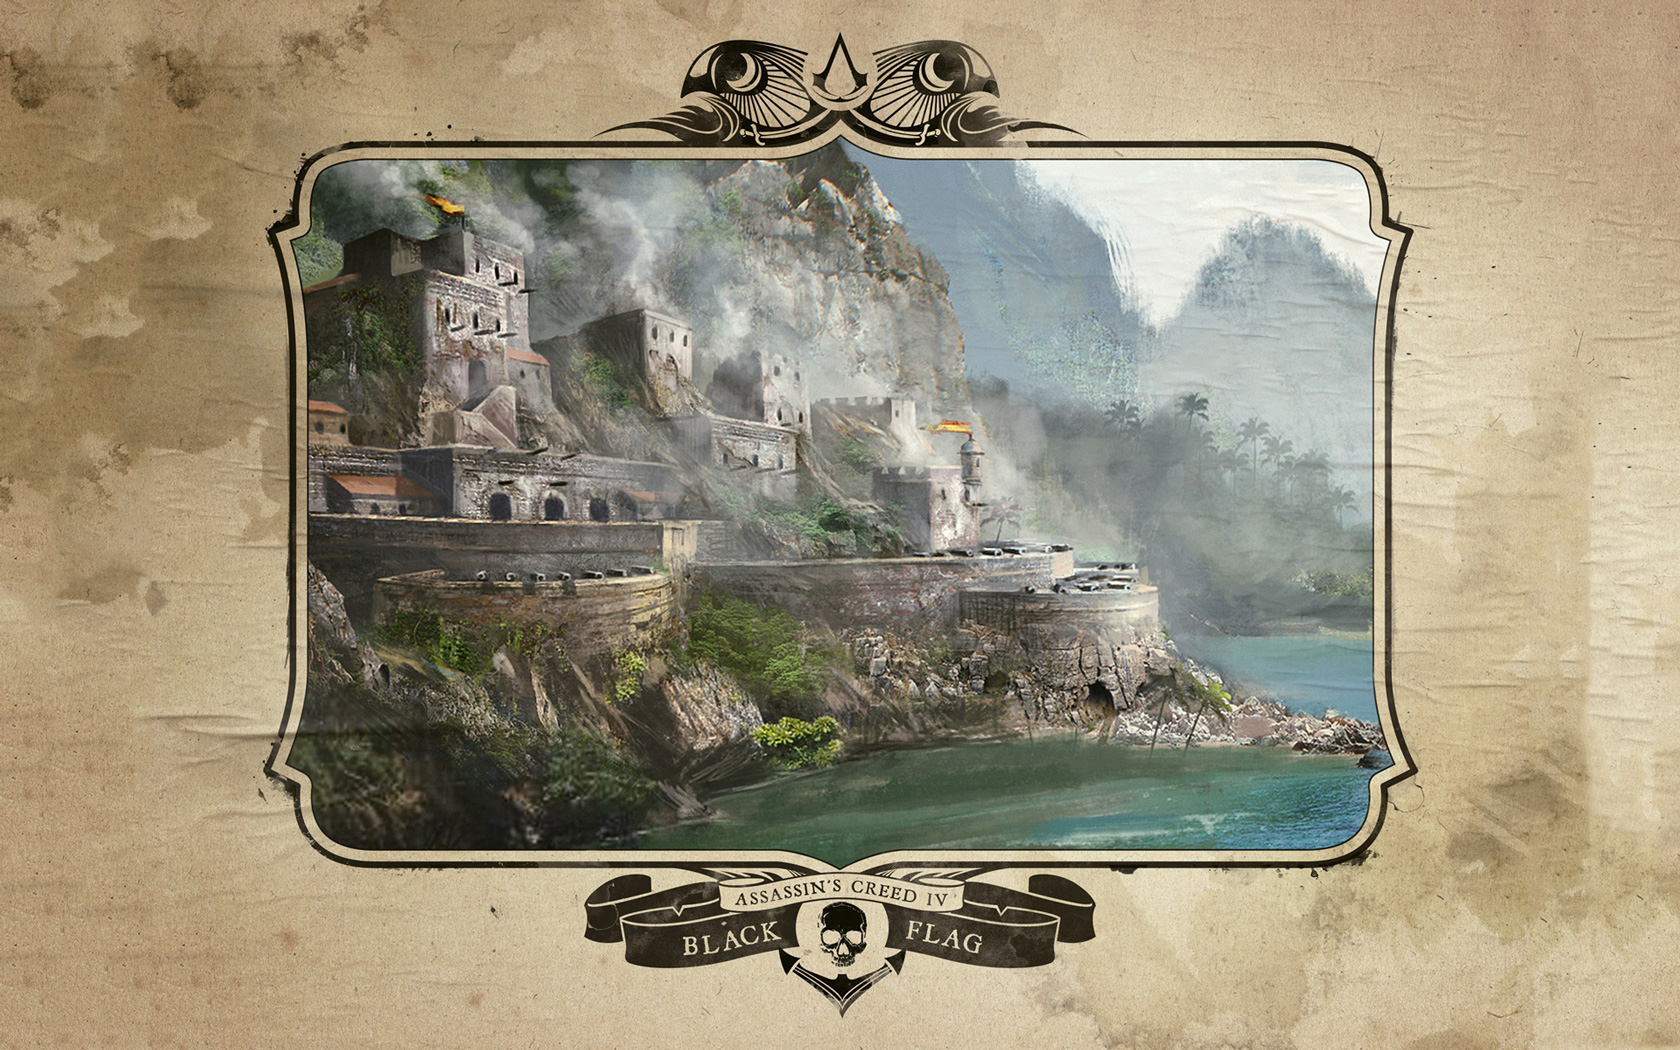 Free Assassin's Creed IV: Black Flag Wallpaper in 1680x1050